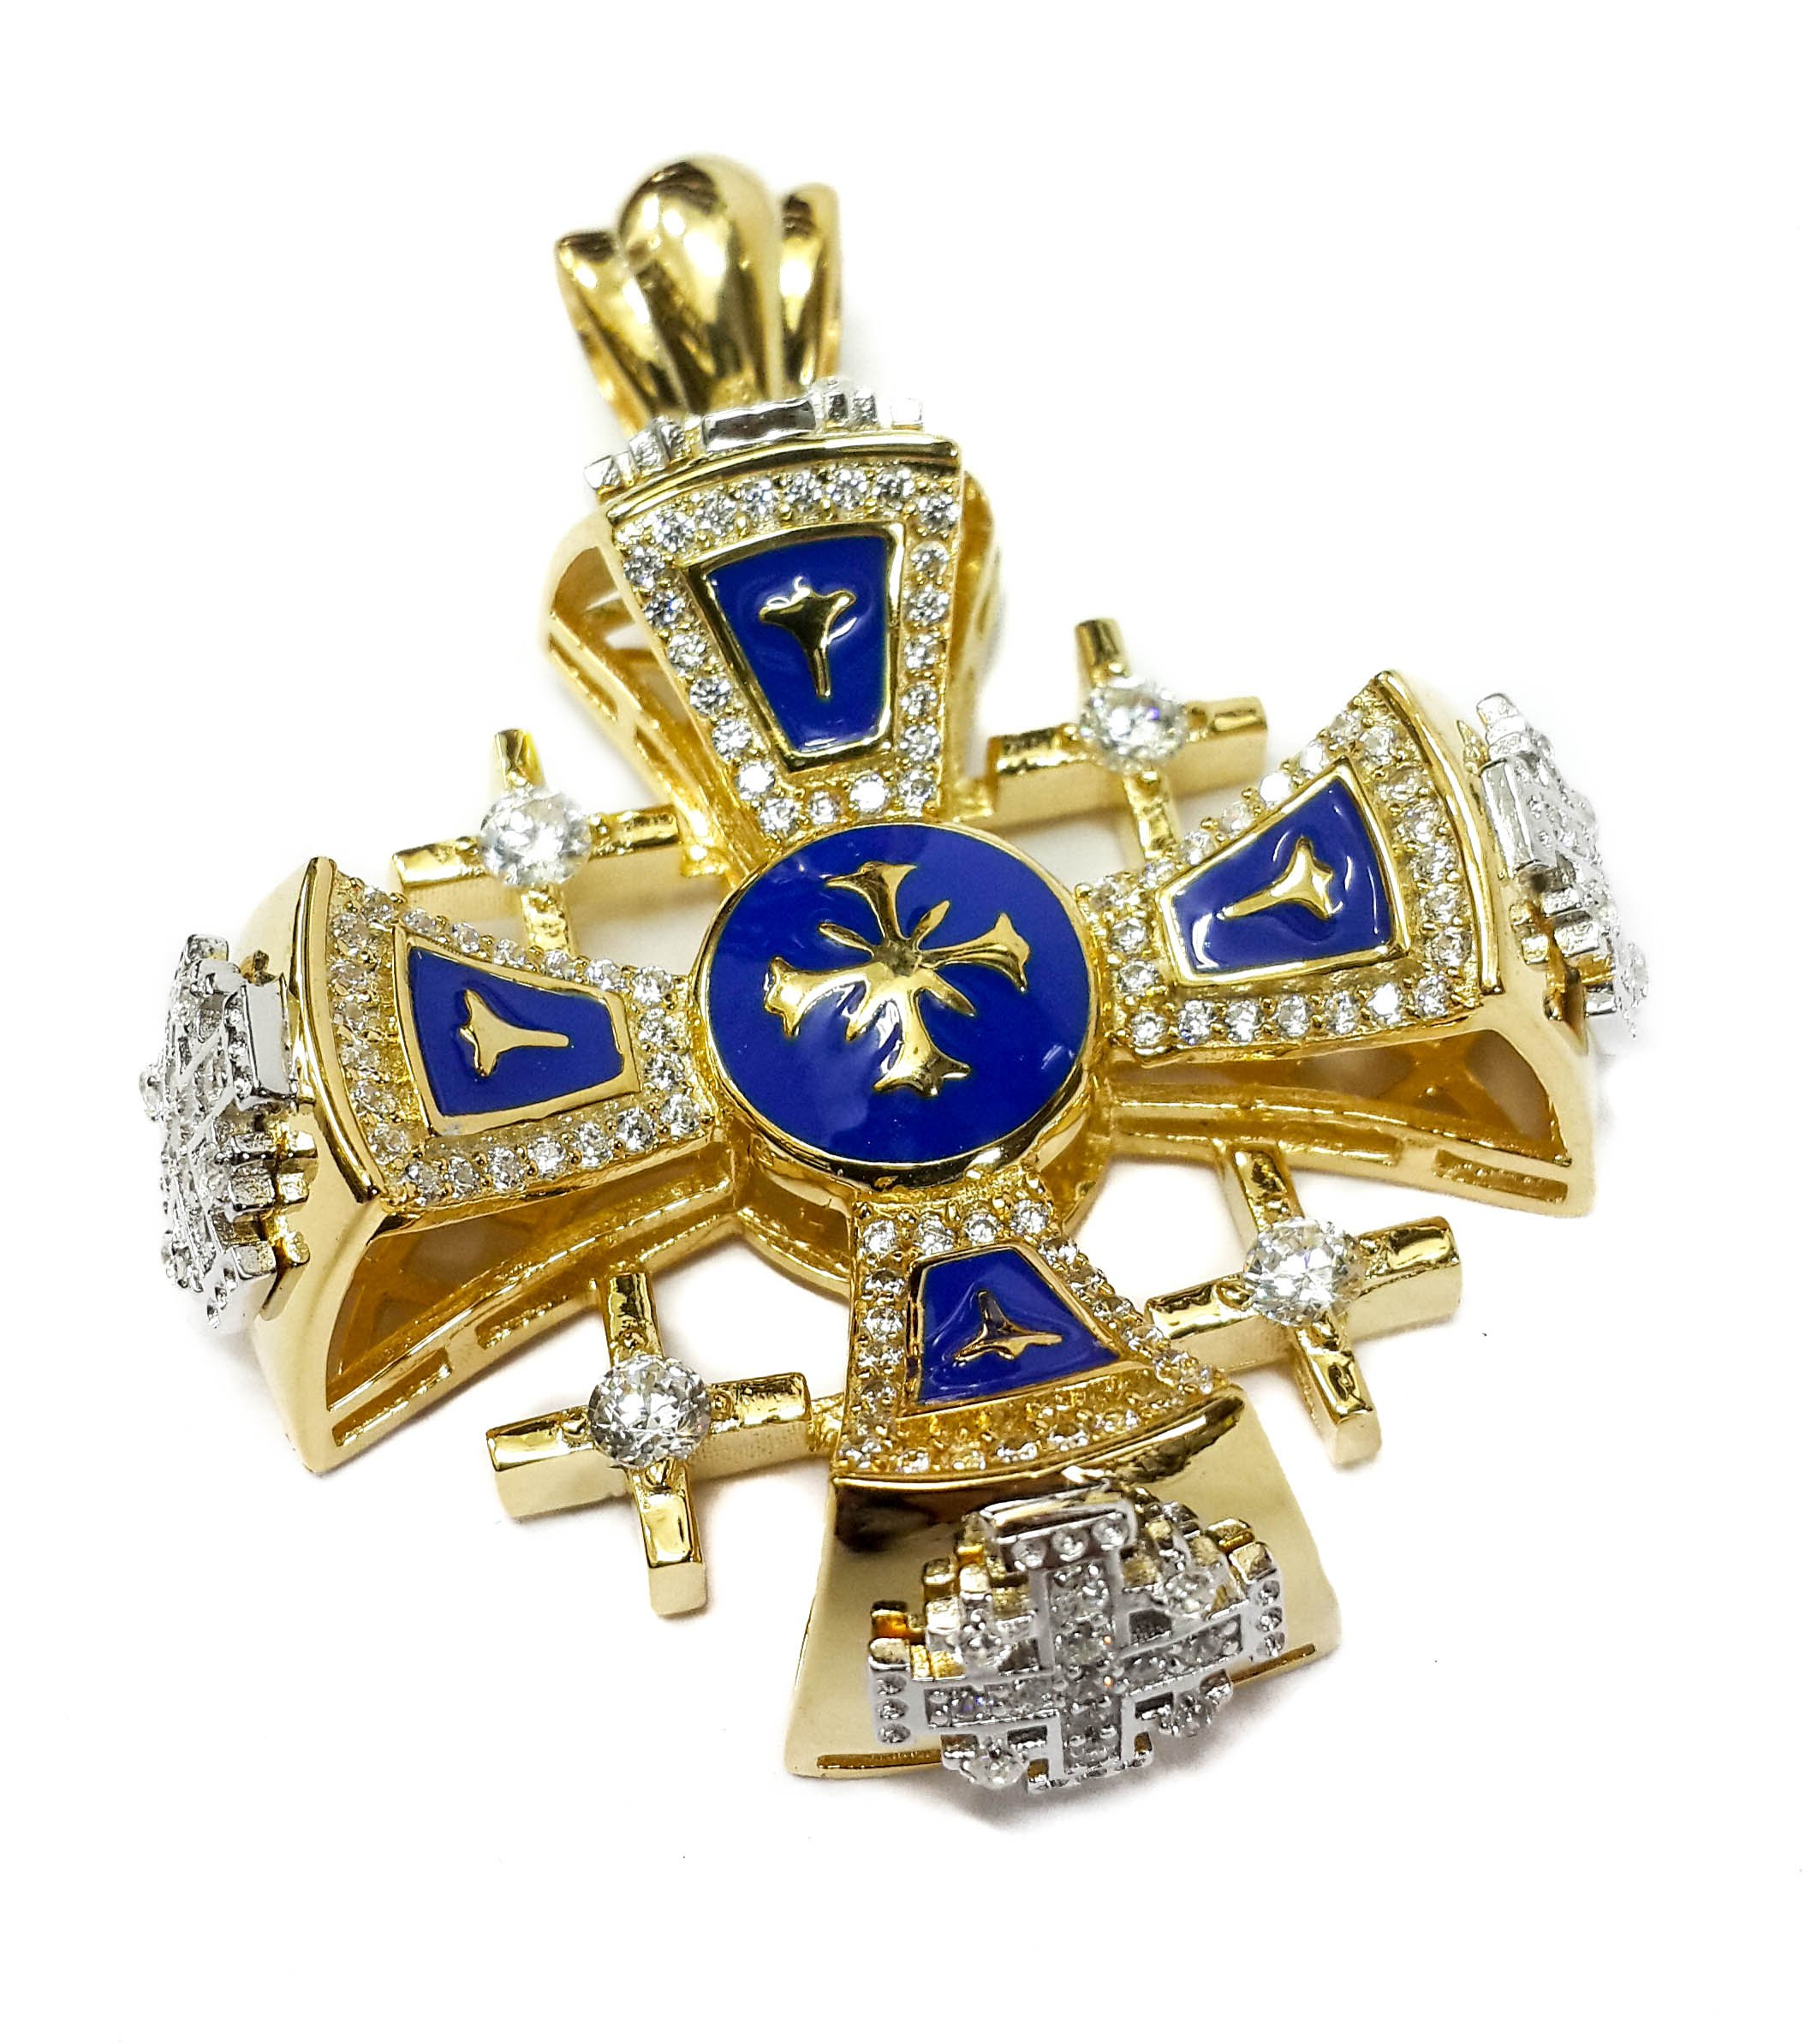 Silver 925 Jerusalem Cross Pendant Plated in 24k Gold Blue Enamel With Crystallized Elements 1.9''